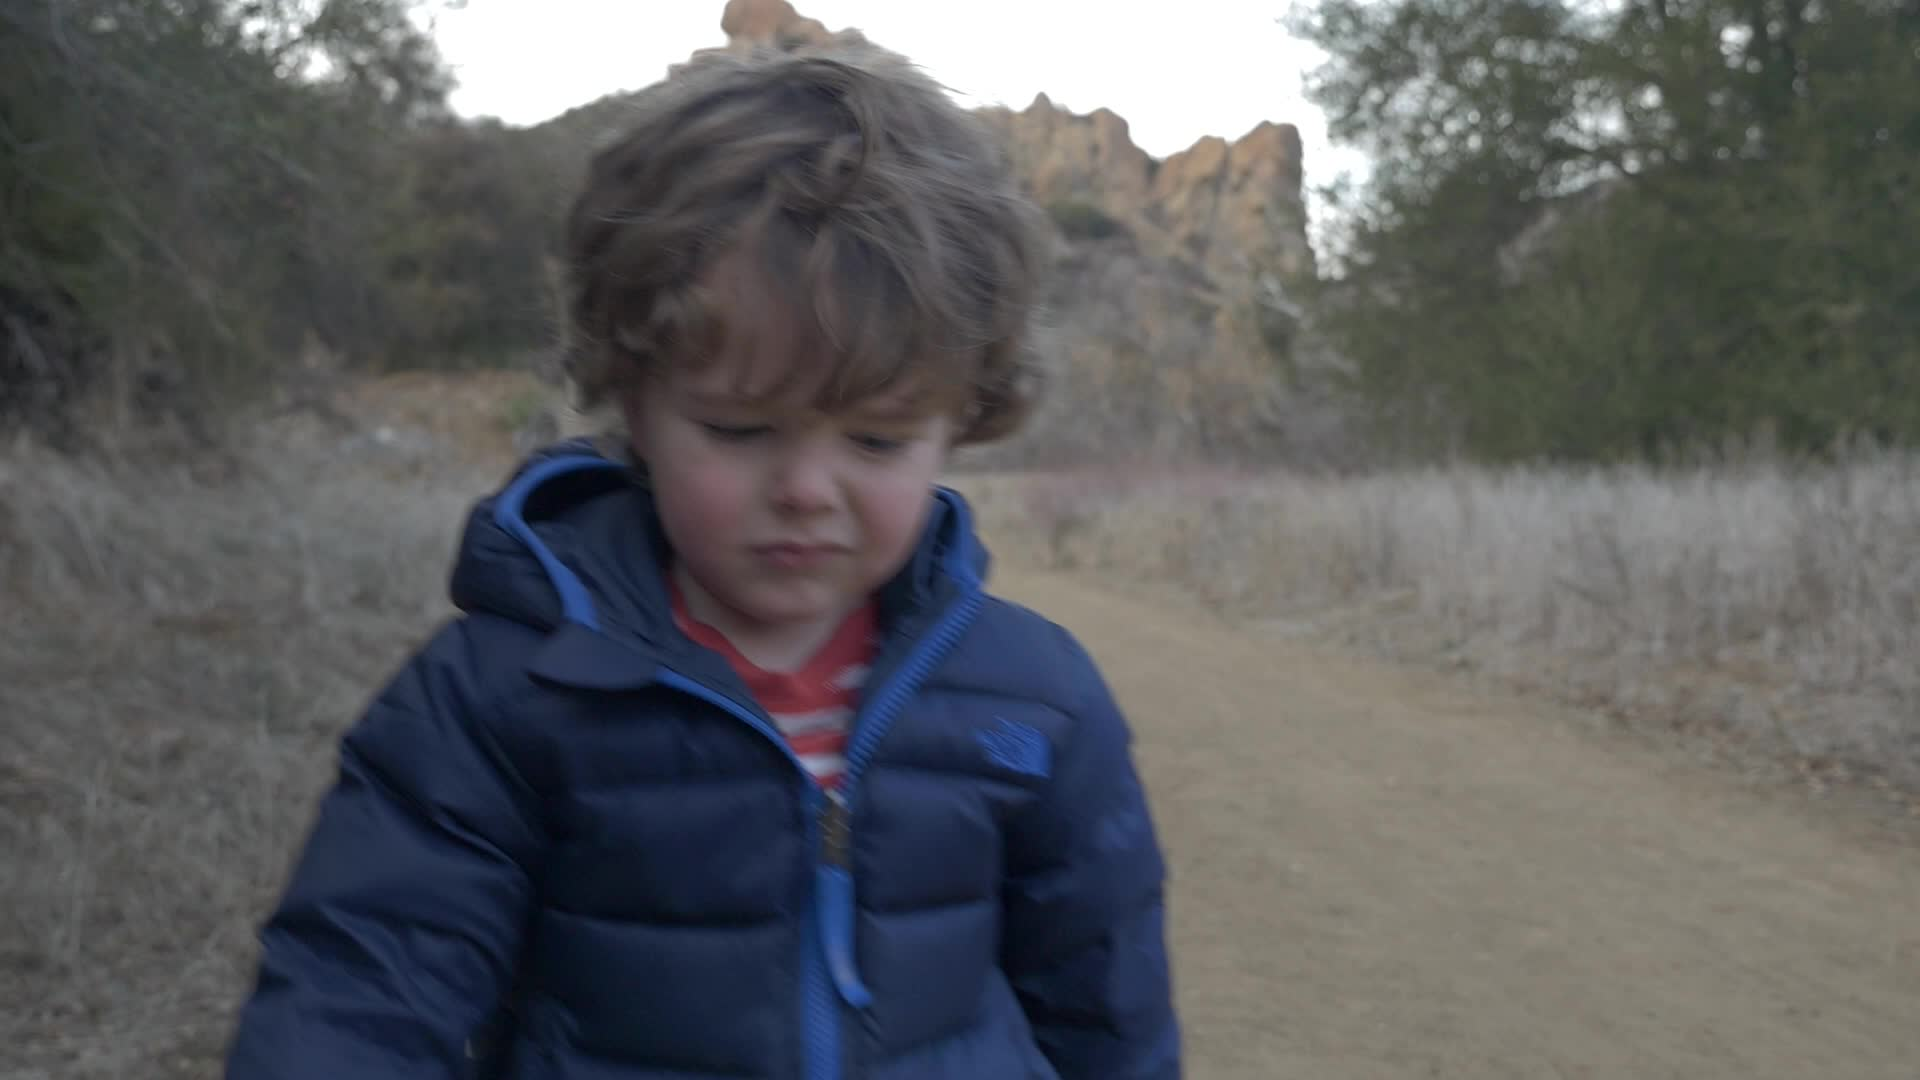 A unique, toddler's-eye-view, of two-year-old Sonny as he explores the varying landscapes of Southern California. We are all born curious. It fuels our innate desire to explore. And we at The North Face are driven to share this passion through The North Face Explore Fund. By giving grants to nonprofits that connect people to the outdoors, we seek to inspire and enable the next generation of explorers.